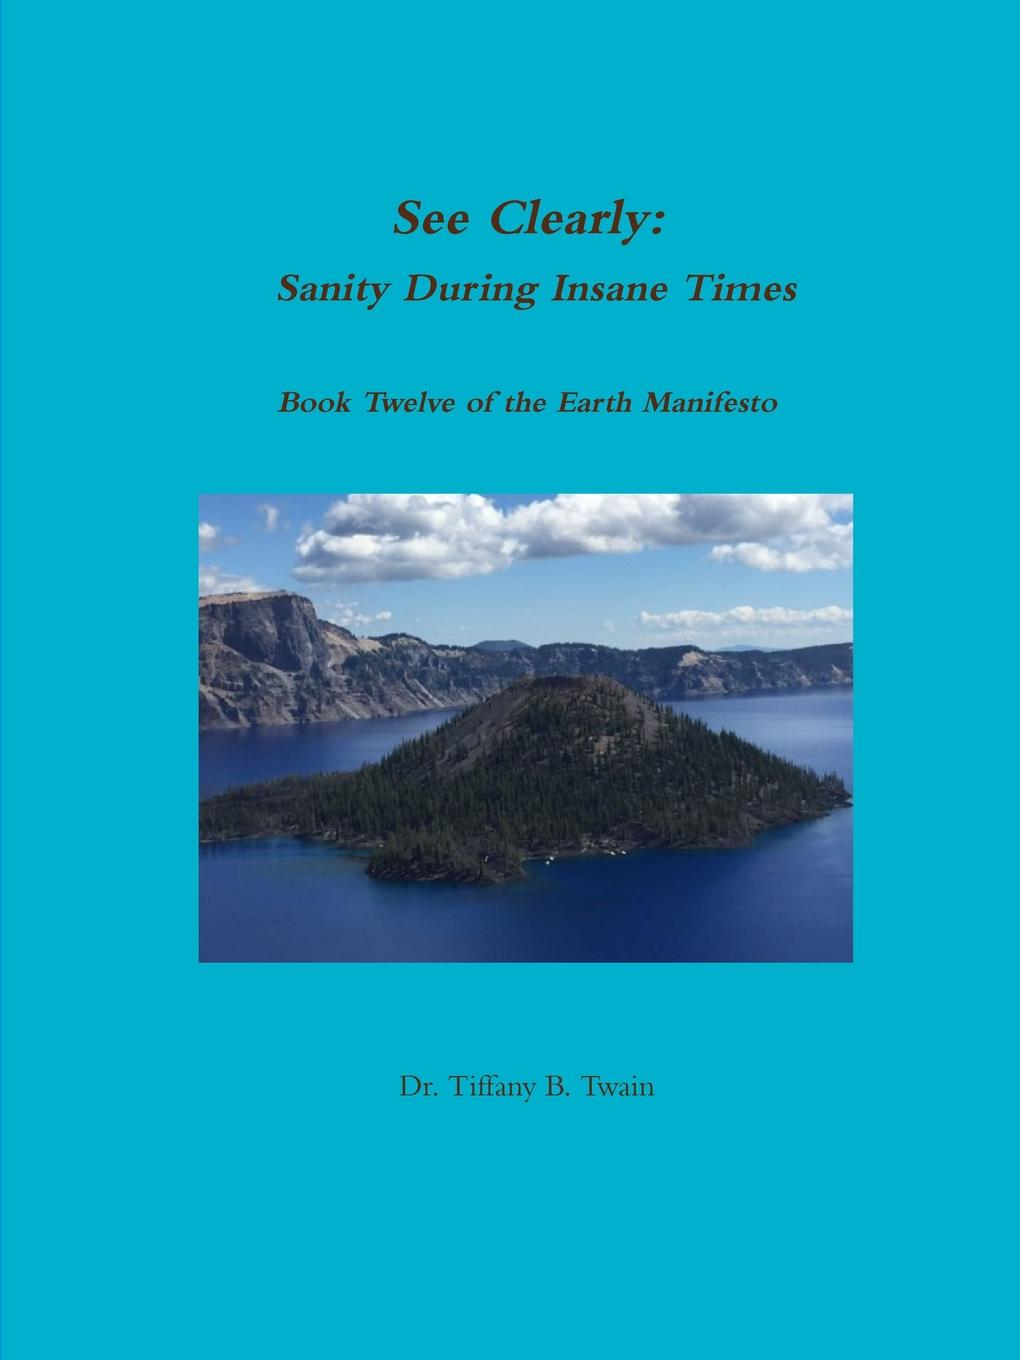 See Clearly - Sanity During Insane Times This Book Twelve of the Earth Manifesto provides a sensational...